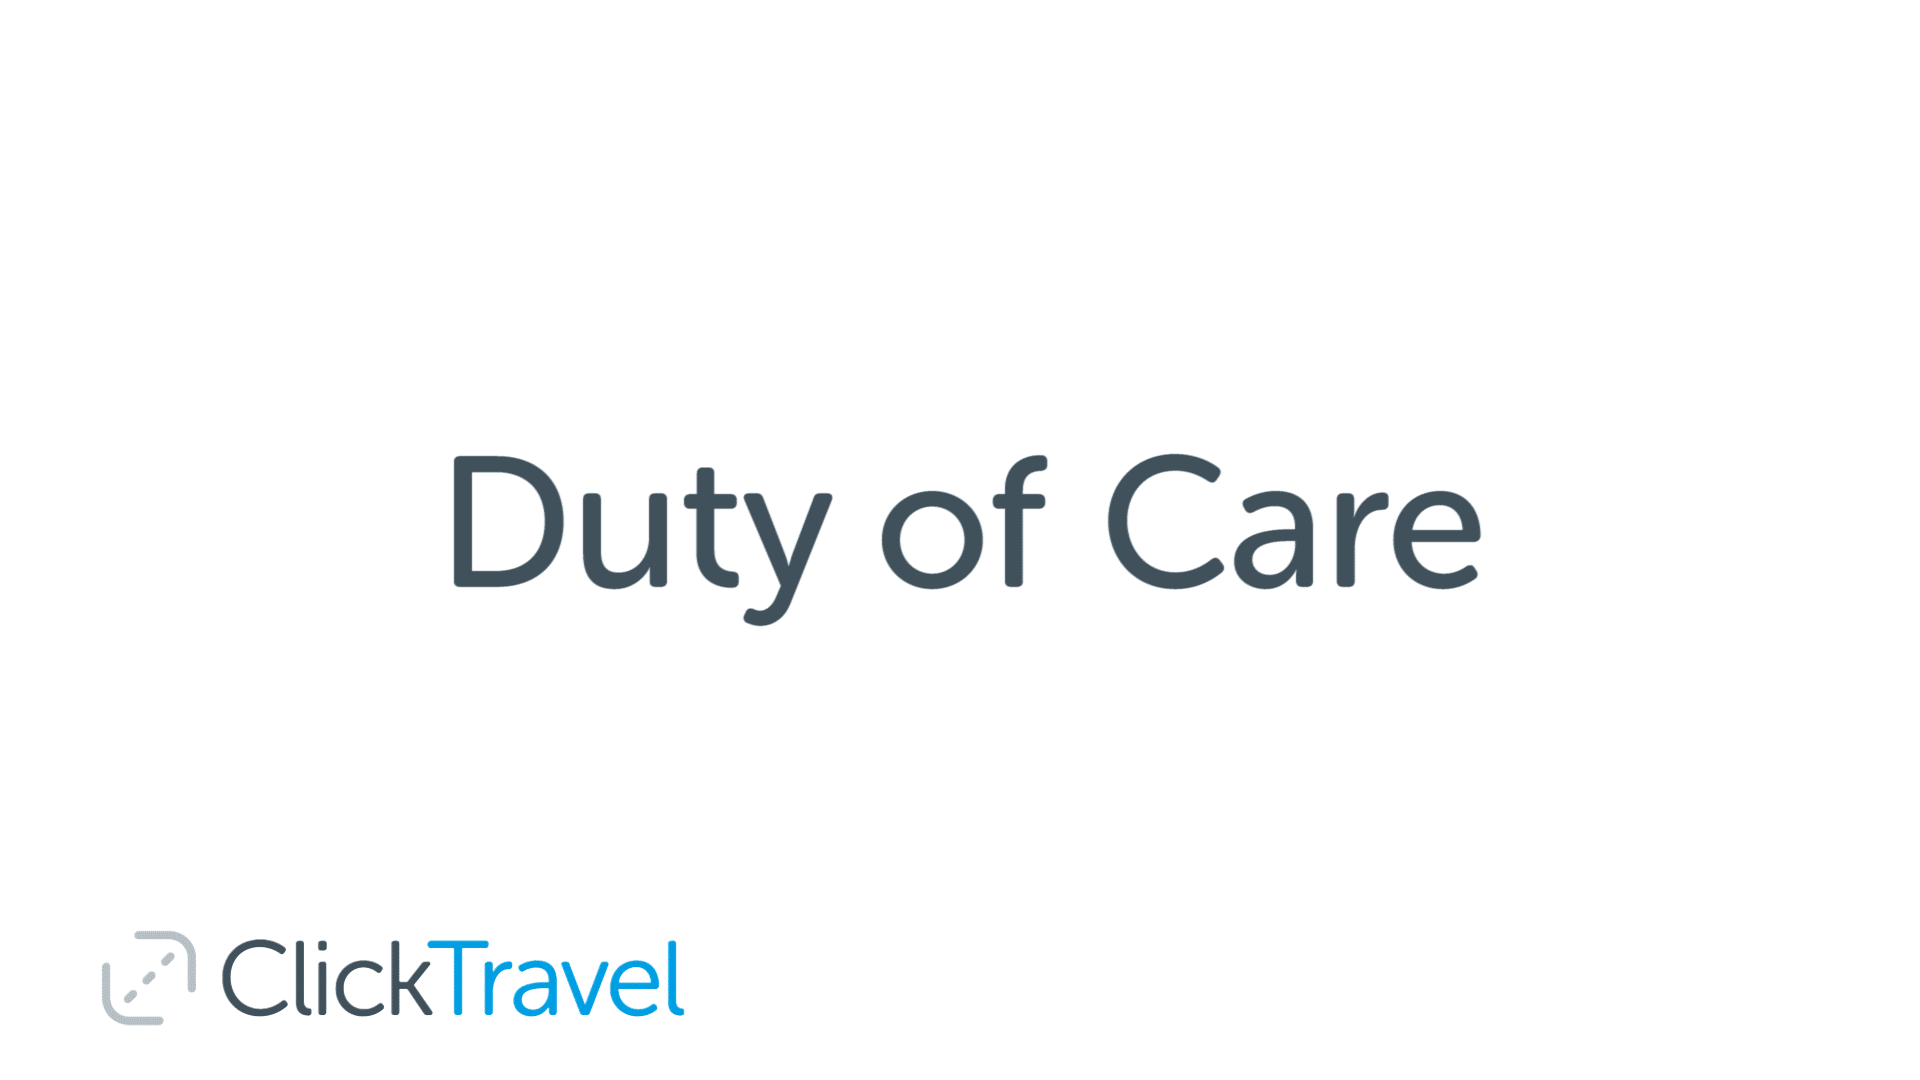 duty of care explained